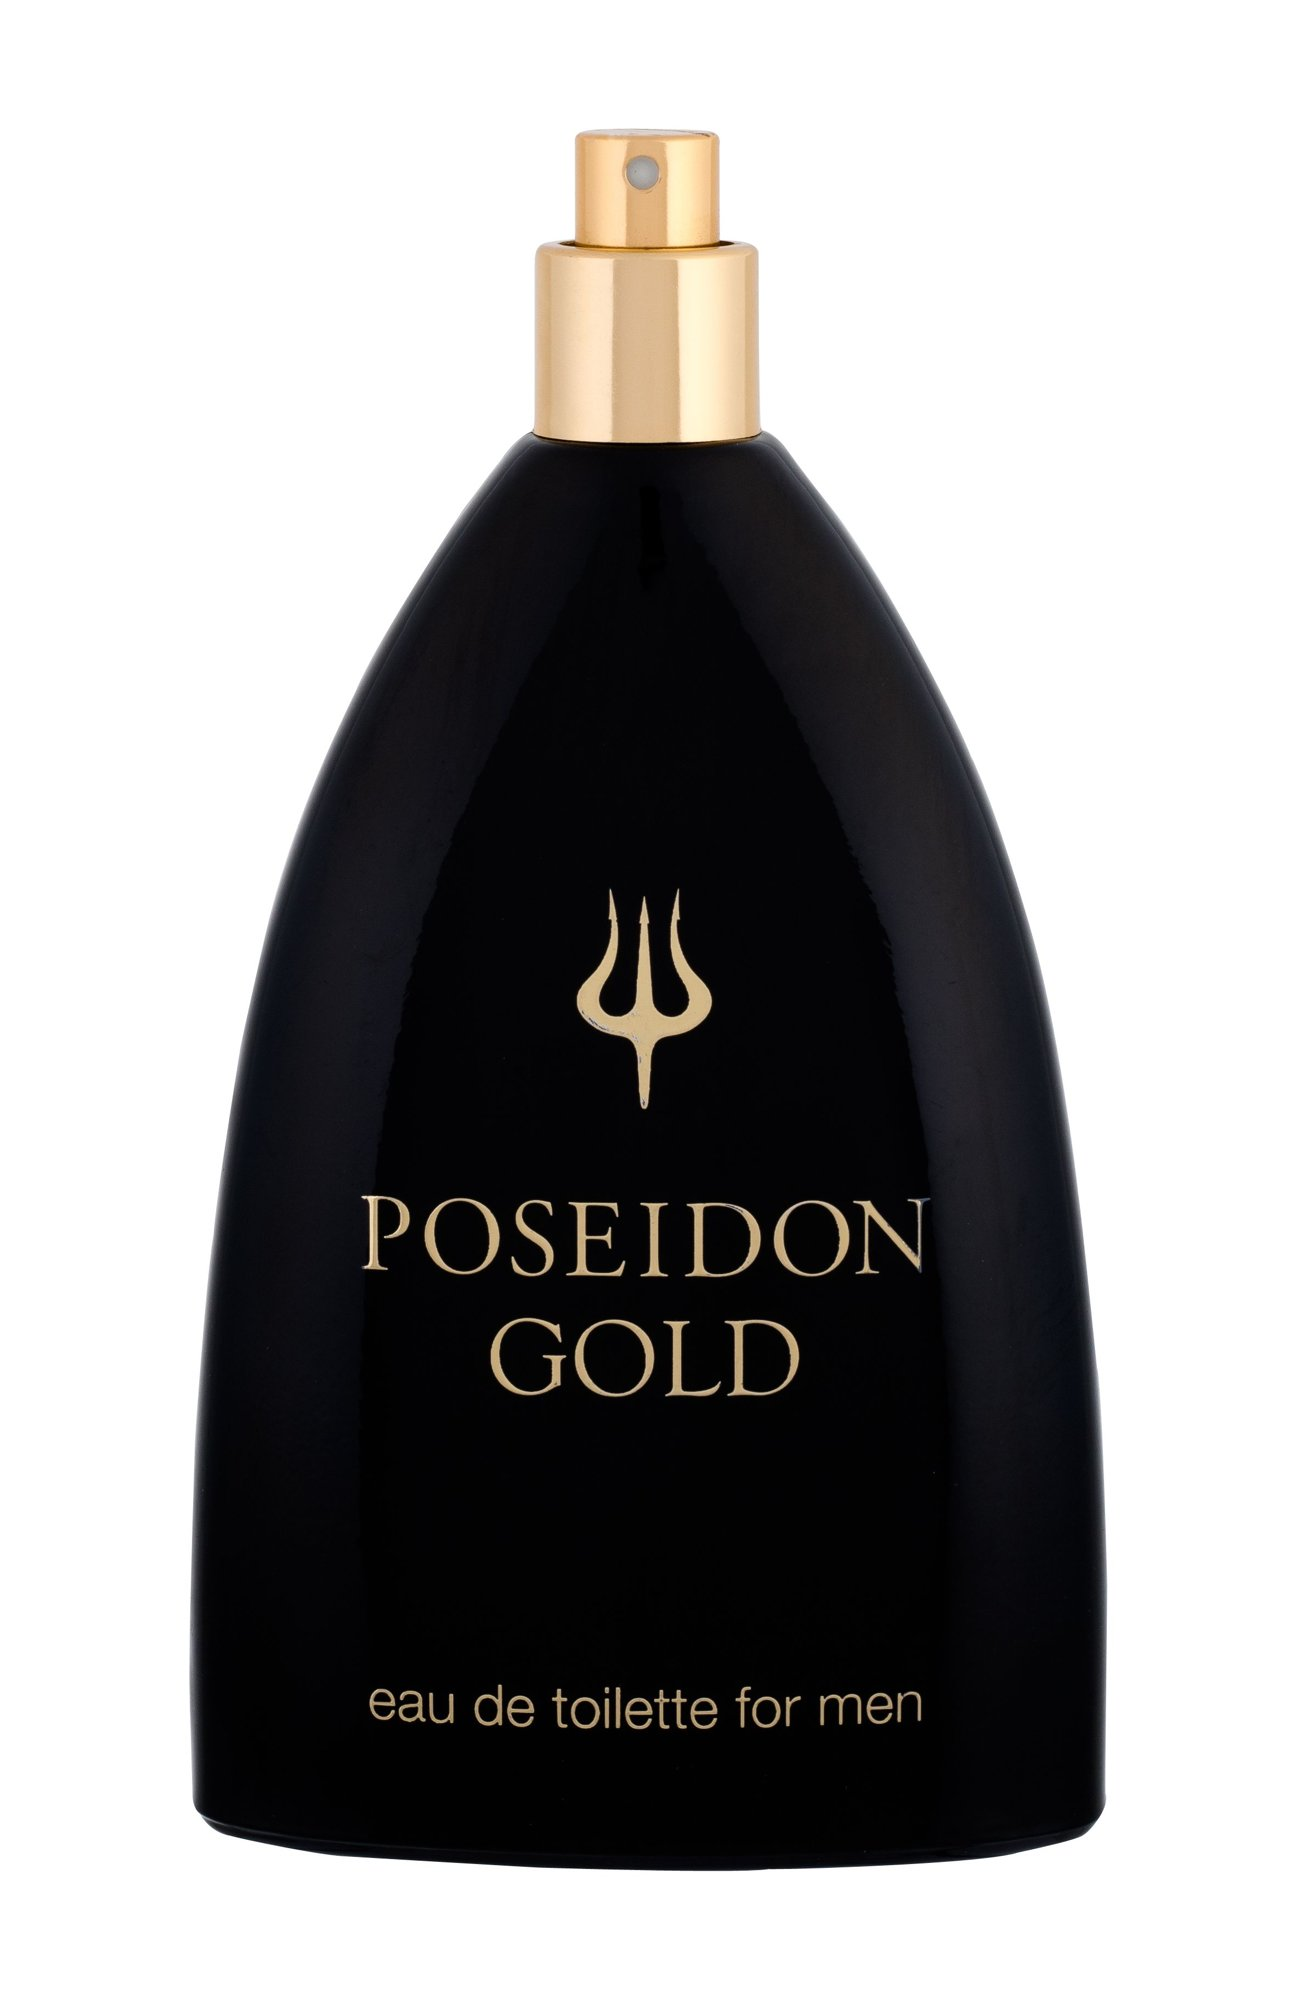 Instituto Espanol Poseidon Gold Eau de Toilette 100ml